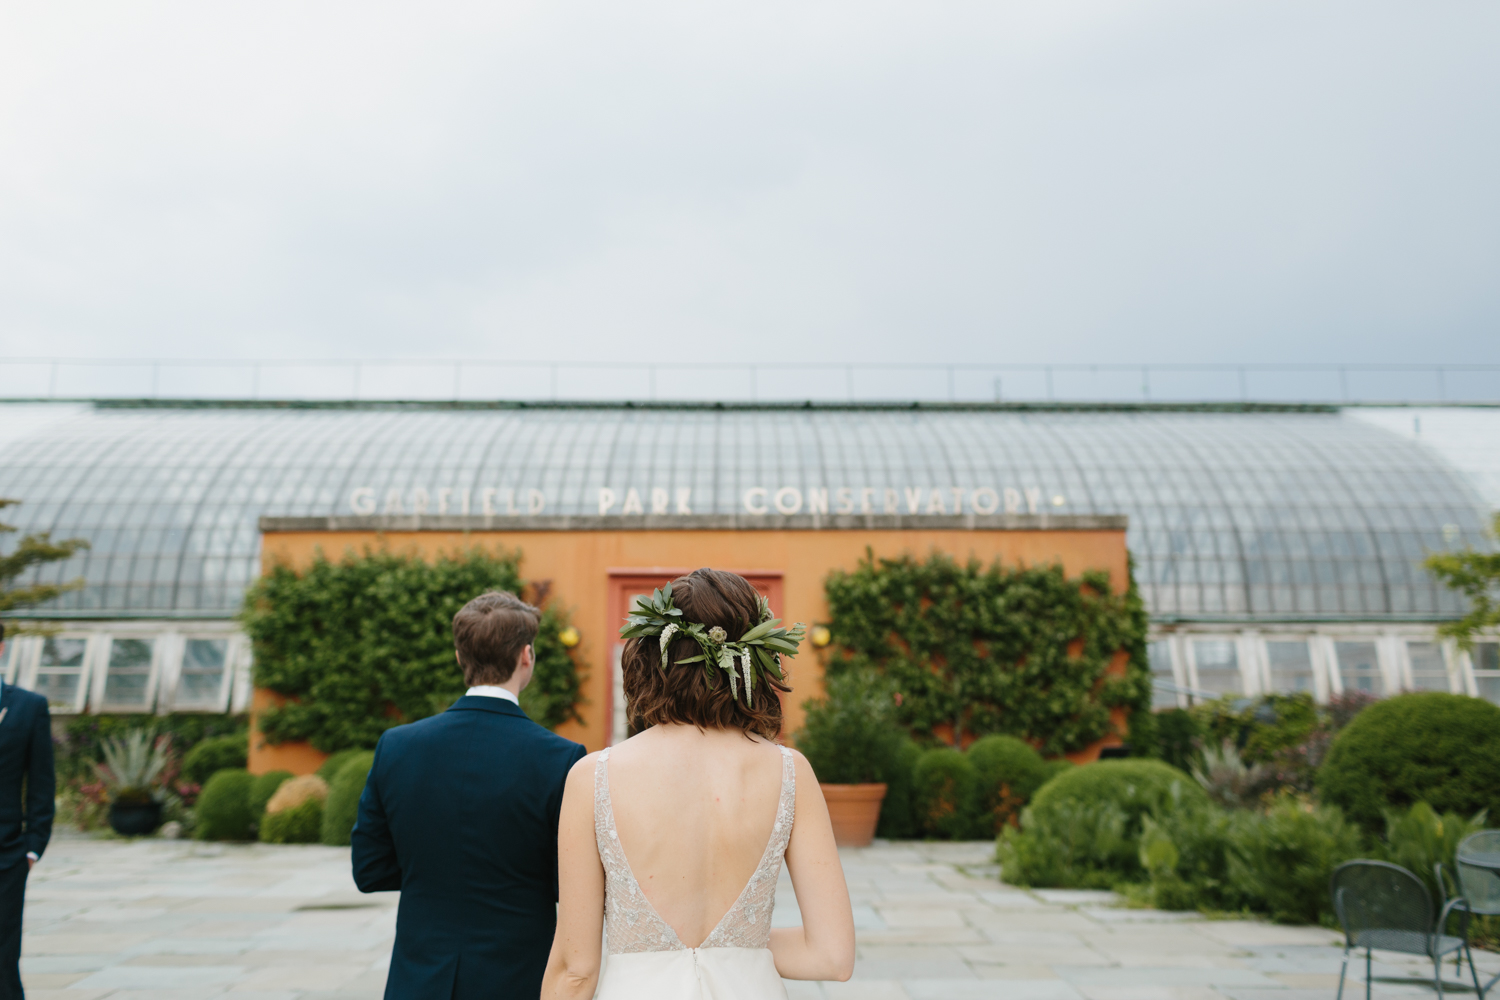 Chicago Garfield Park Conservatory Wedding by Northern Michigan Photographer Mae Stier-054.jpg